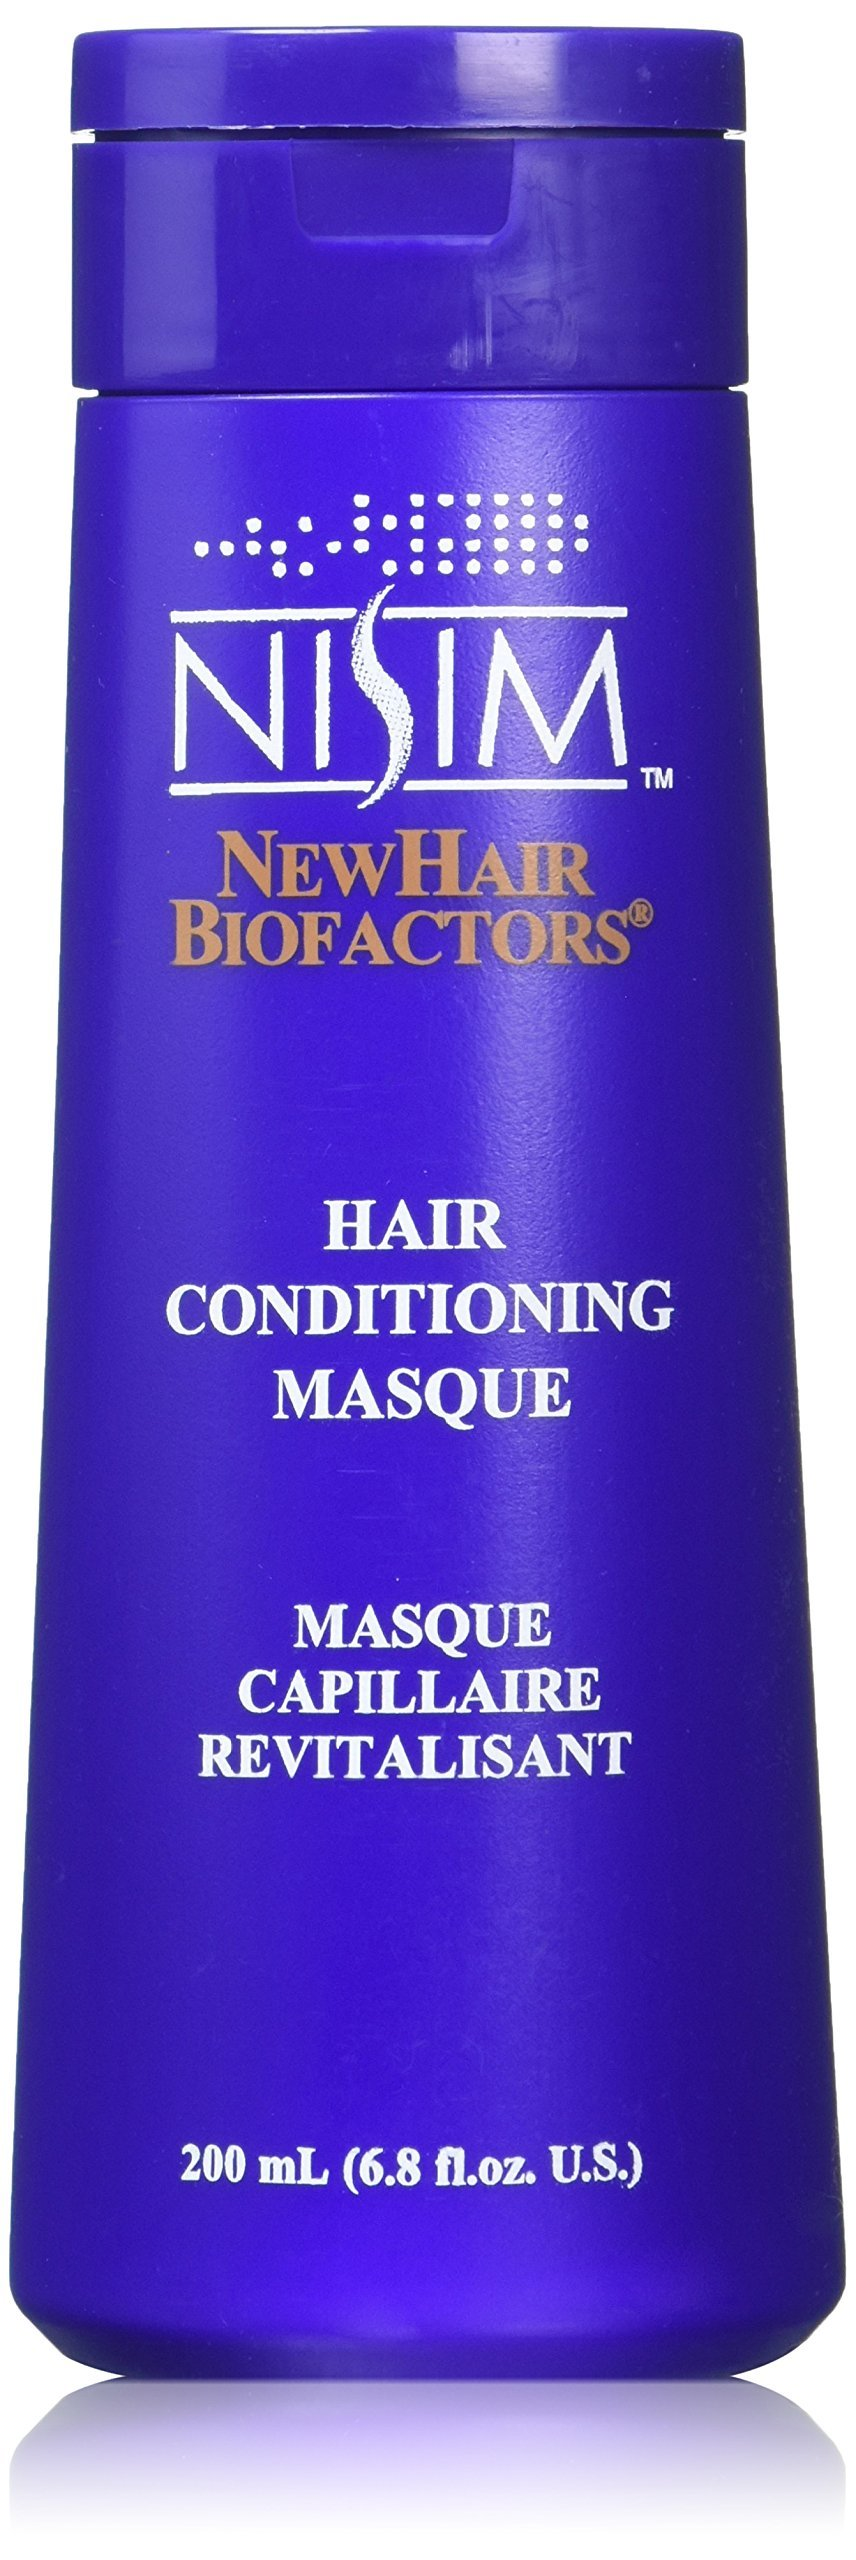 NISIM Hair Conditioning Masque - Moisturizing Hair Mask Designed for Very Dry, Damaged, and Over Treated Hair (6.8 Ounce / 200 Milliliter)